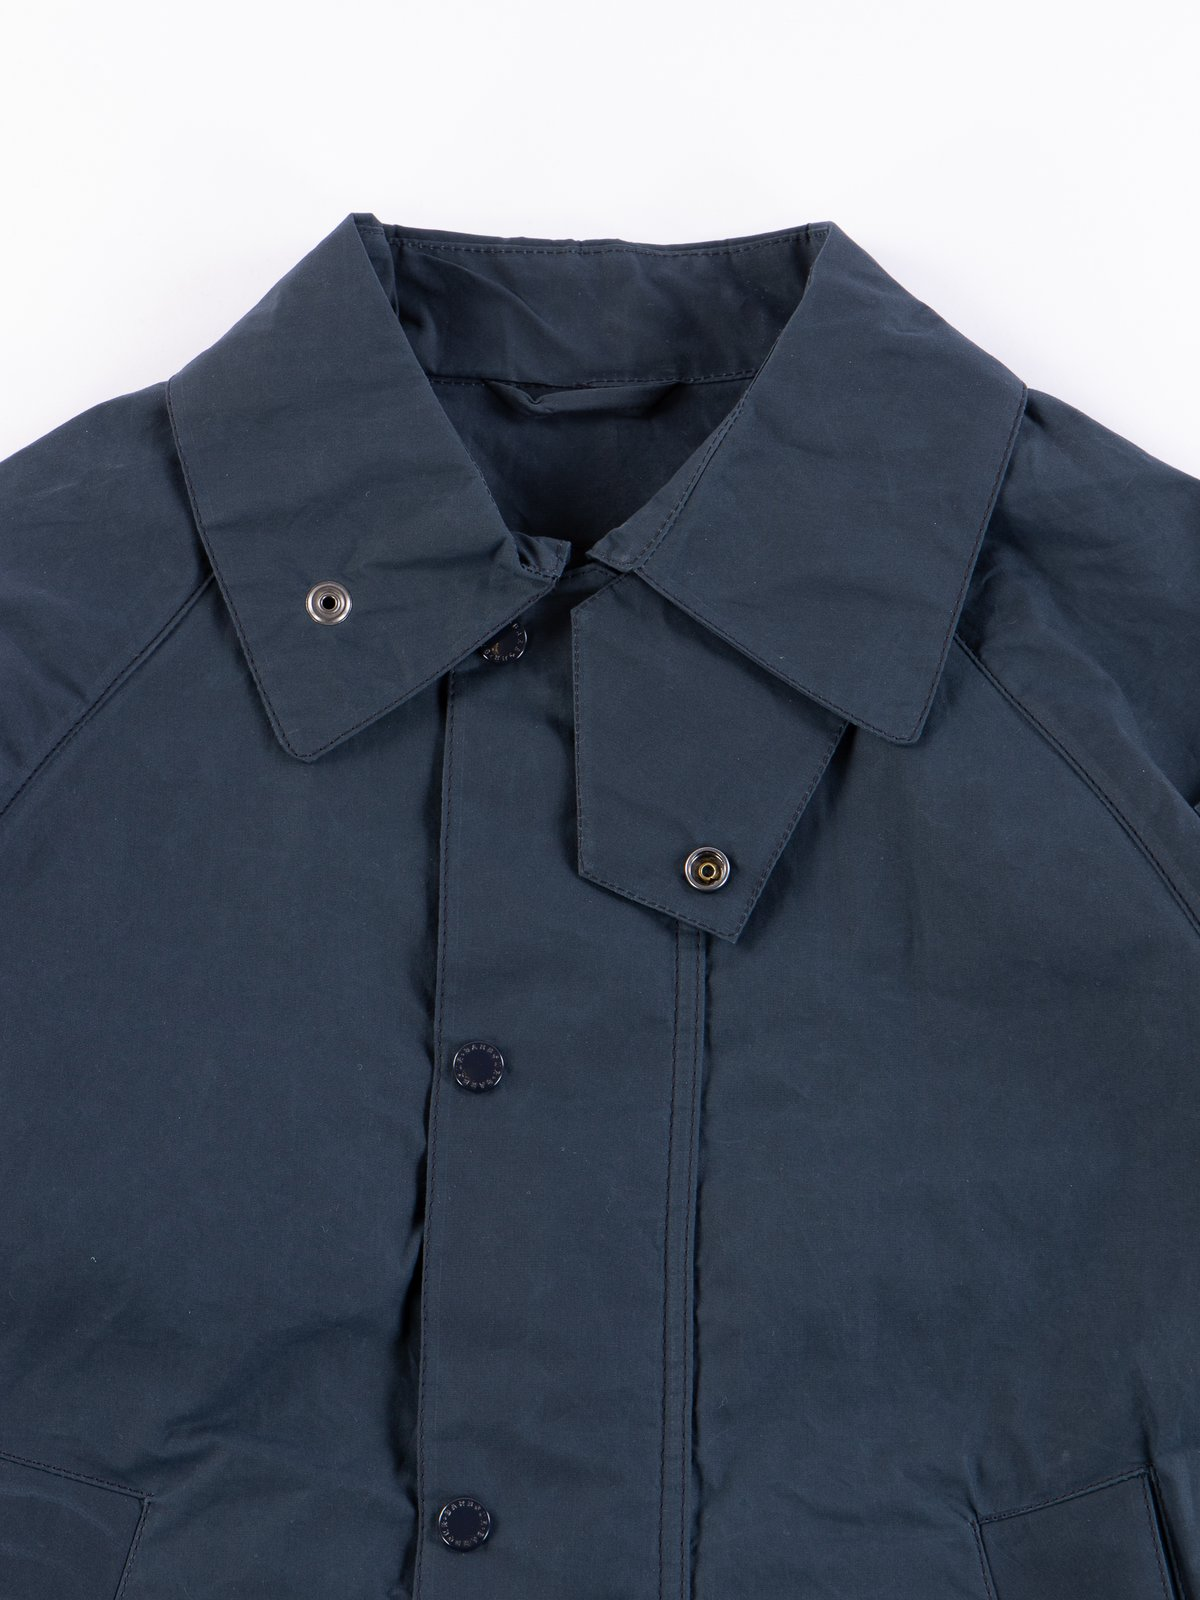 Navy Unlined Graham Jacket - Image 3